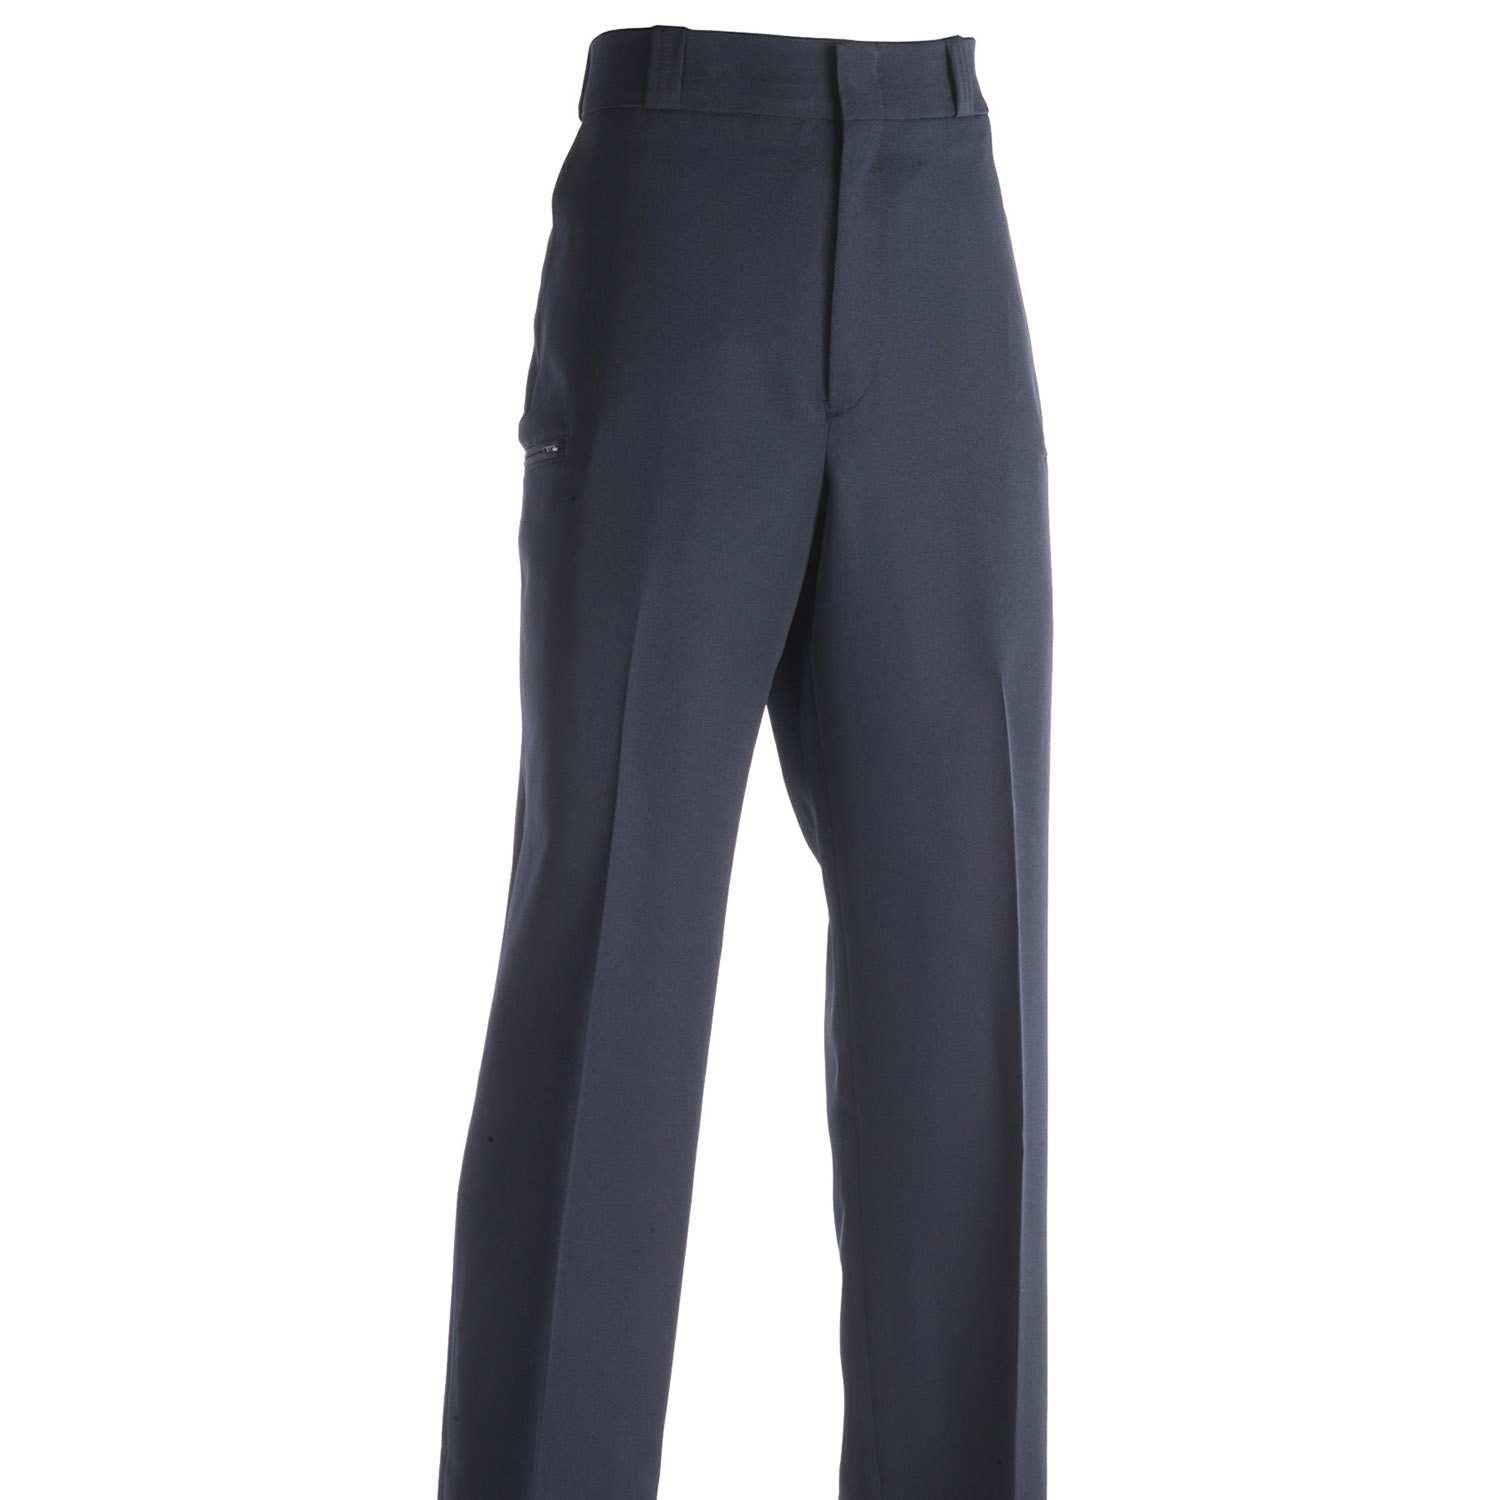 Polyester Uniform Pants 87